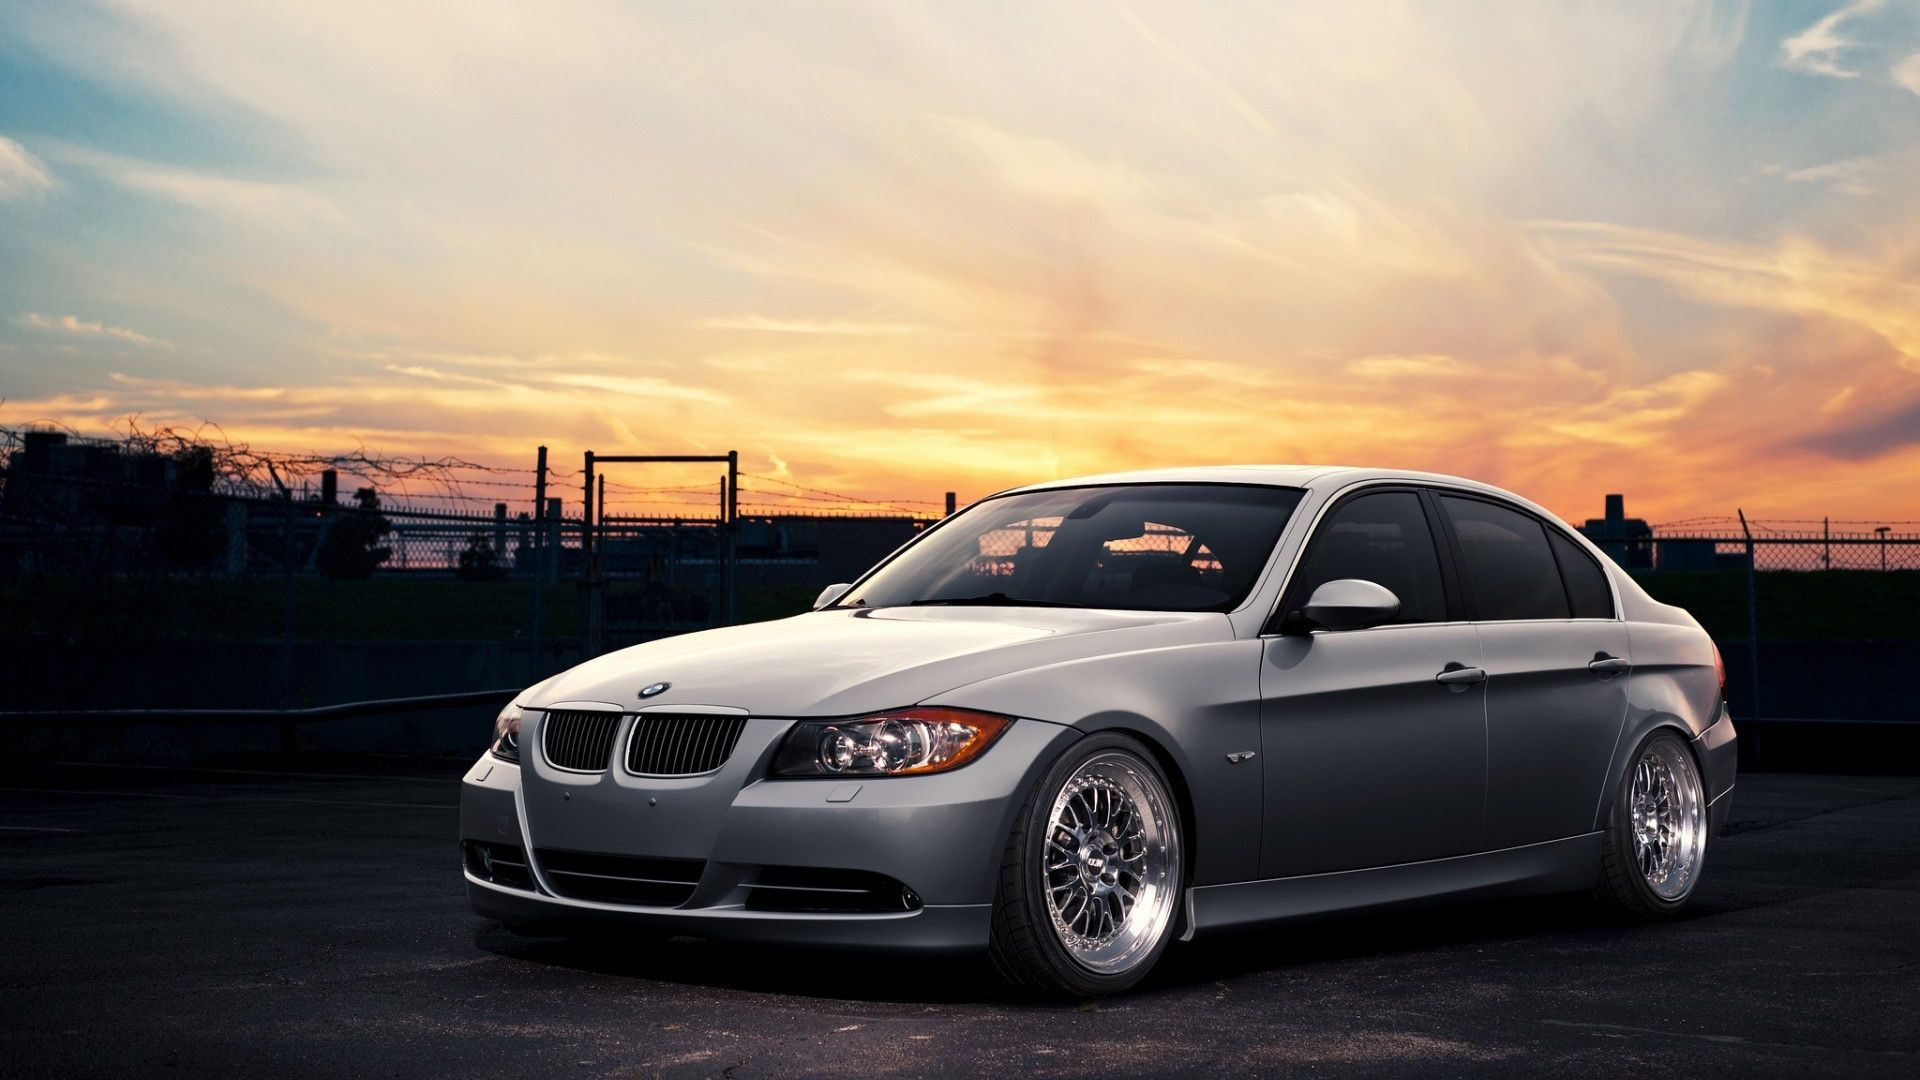 BMW E90 Wallpaper 01 - [1920x1080]